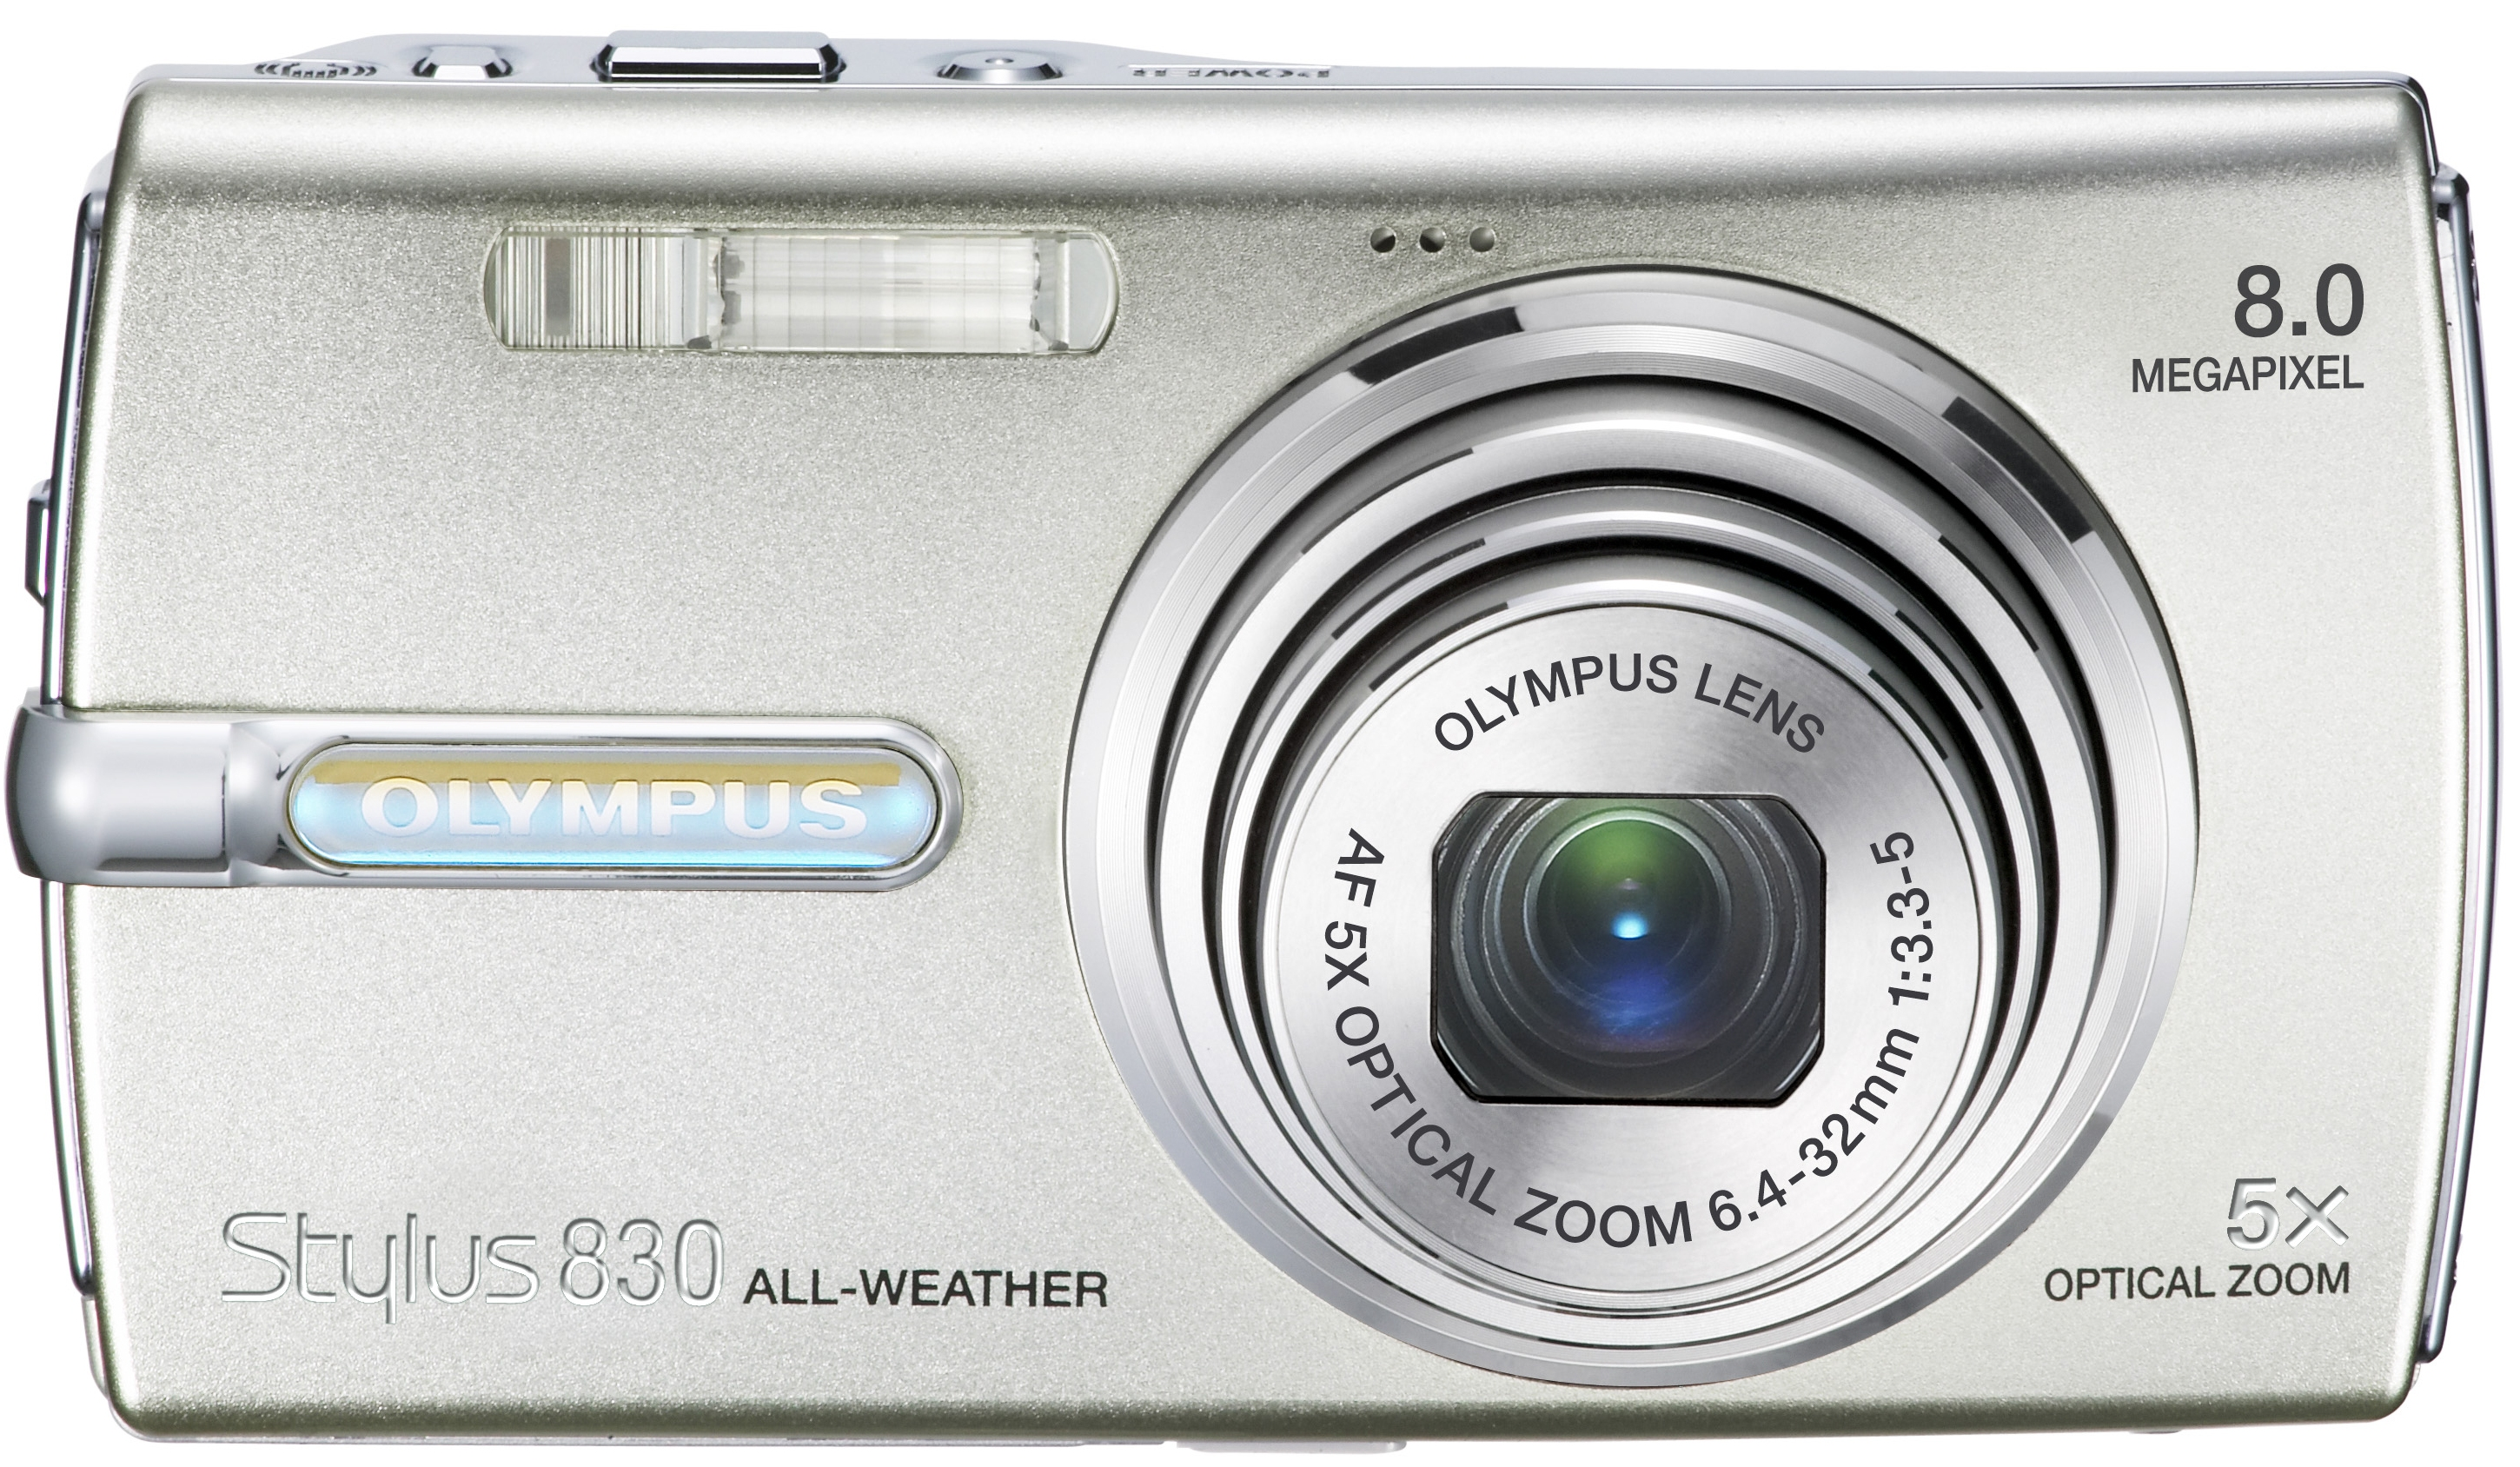 Olympus X-560WP Digital Camera Case Replacement by Vidpro